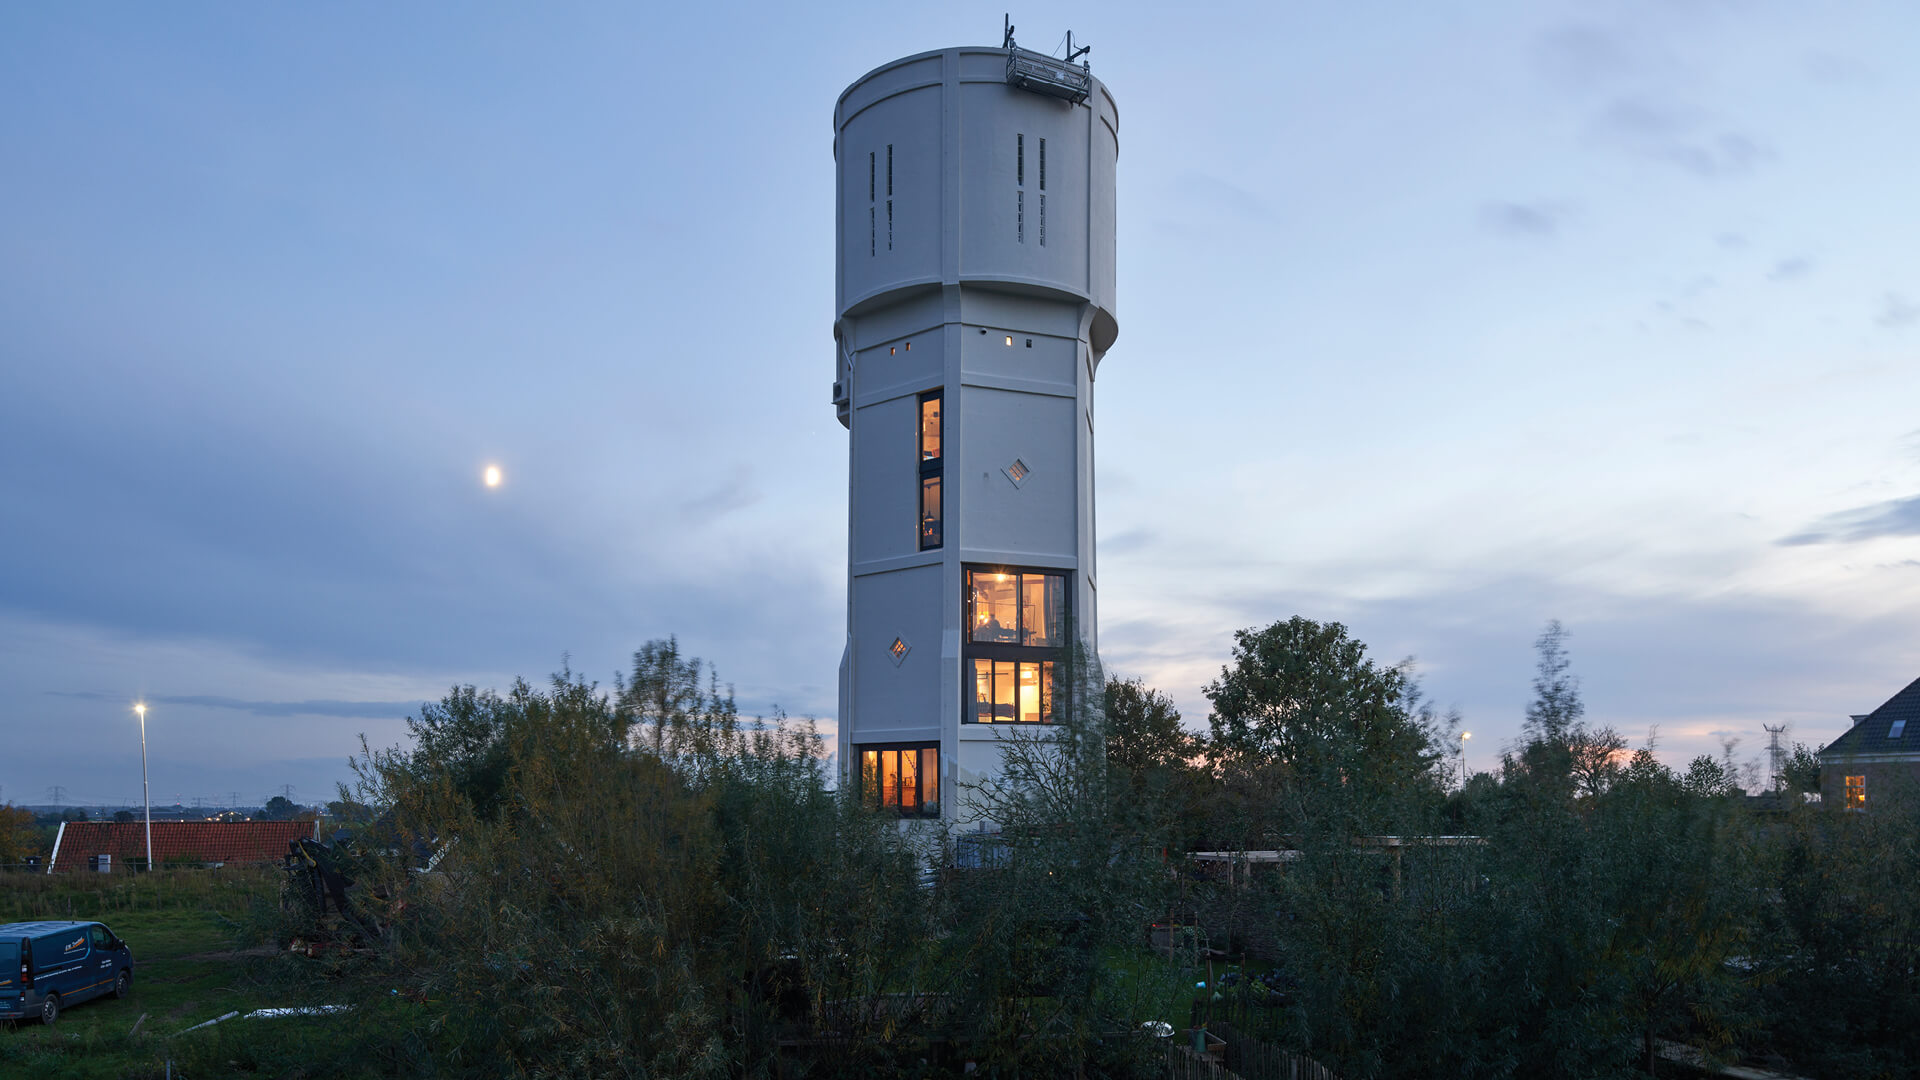 RVArchitecture transforms a water tower in the Netherlands to house two families